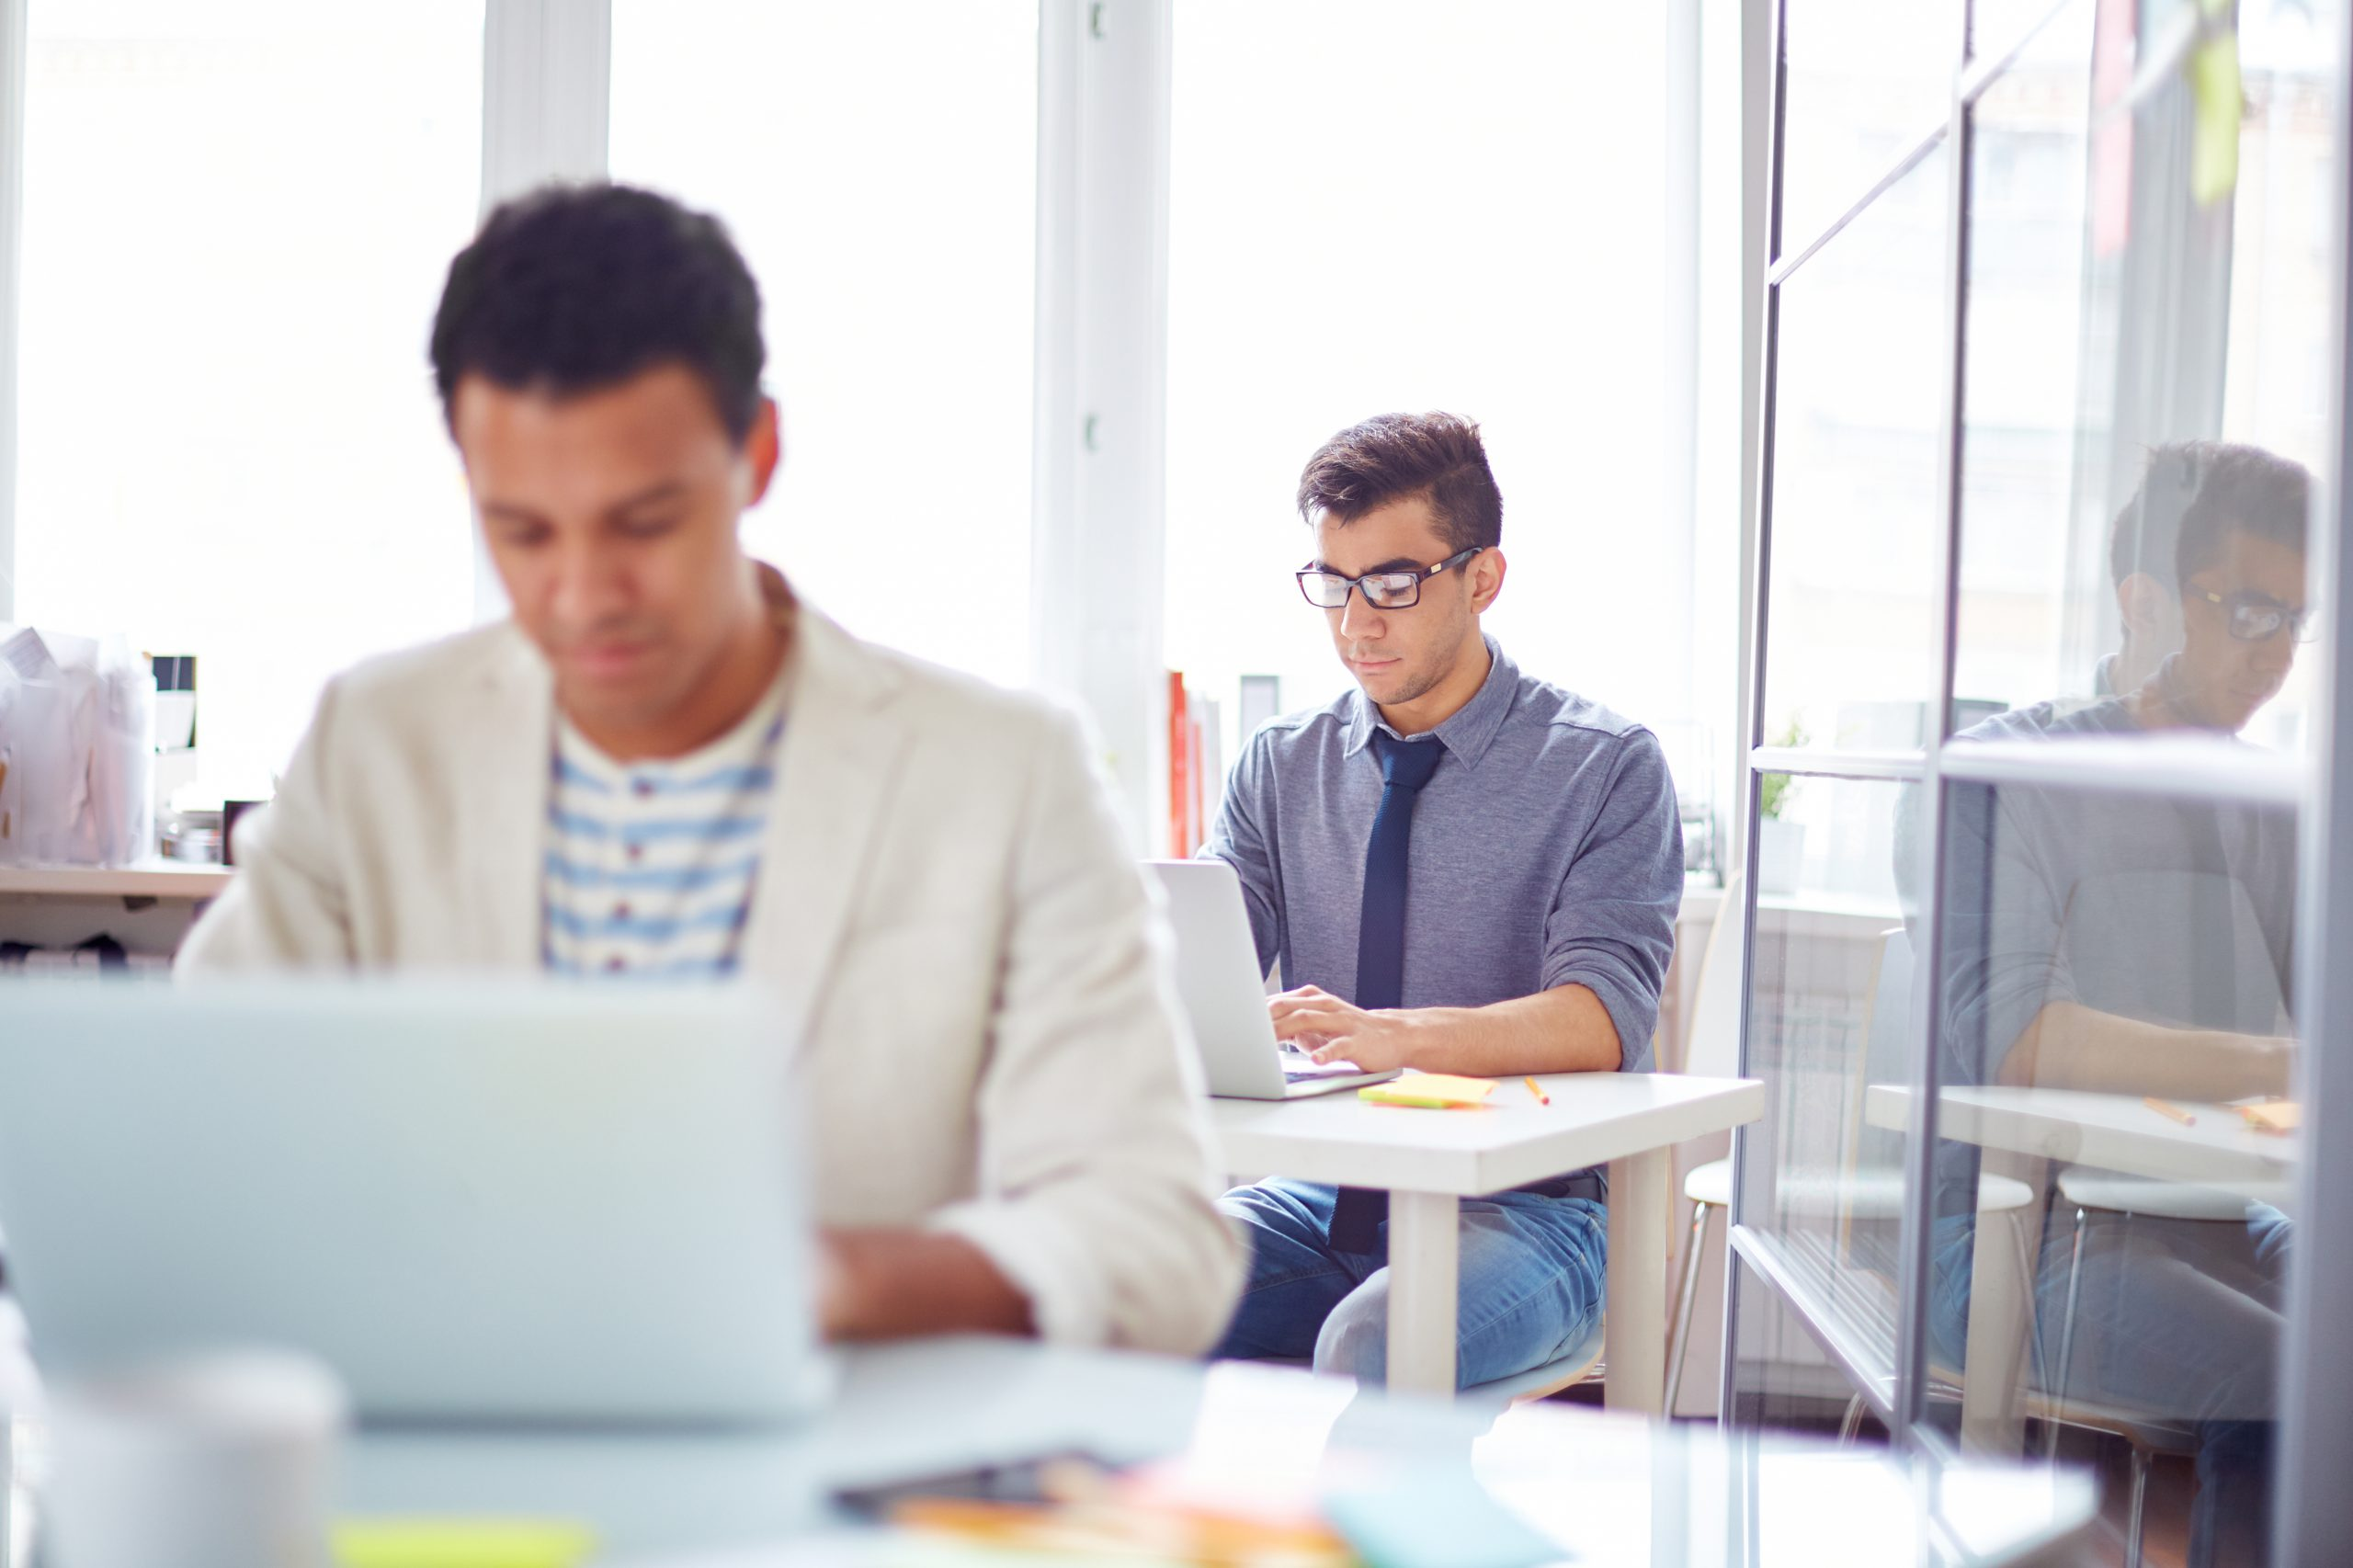 Beyond Raises: 7 Ways to Improve Your Employee's Morale Without More Salary